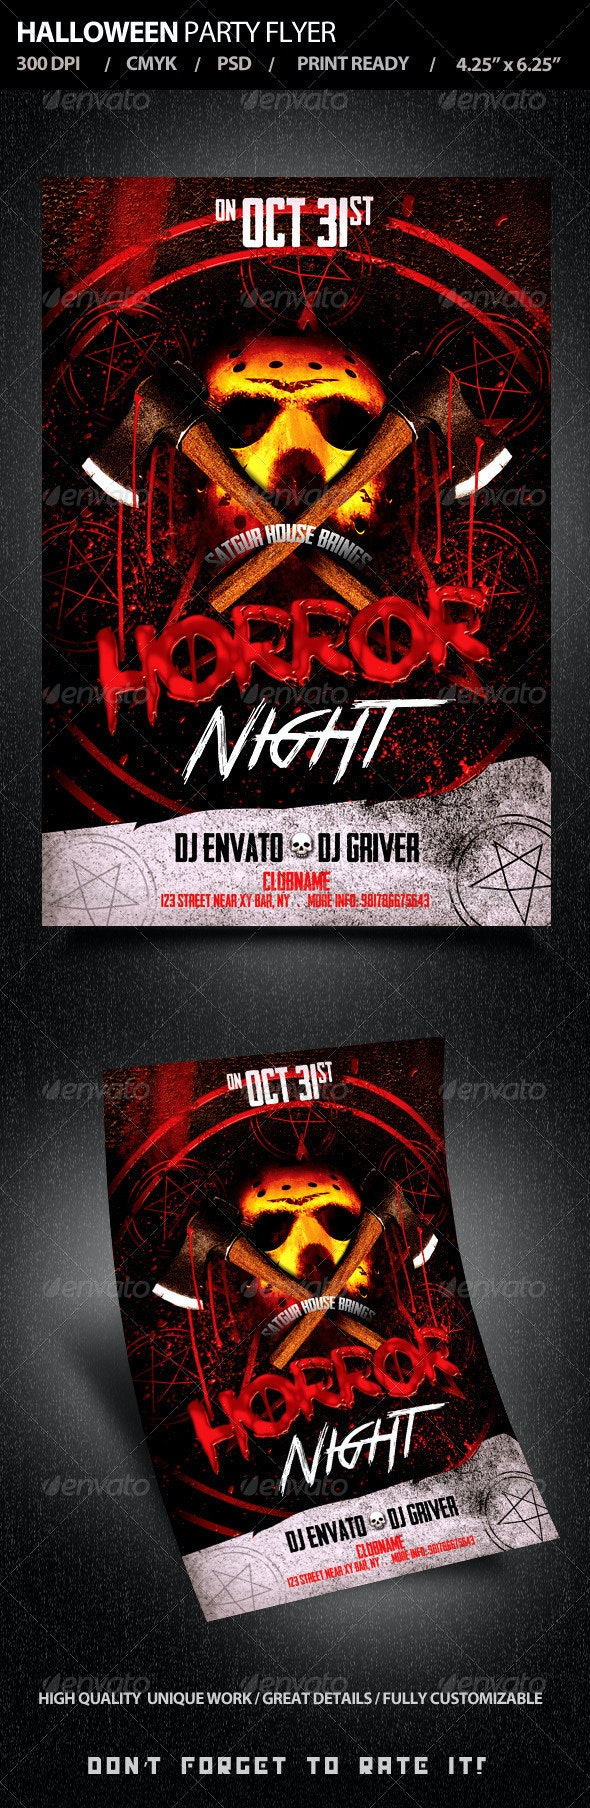 Halloween Party Flyer V3 - Holidays Events